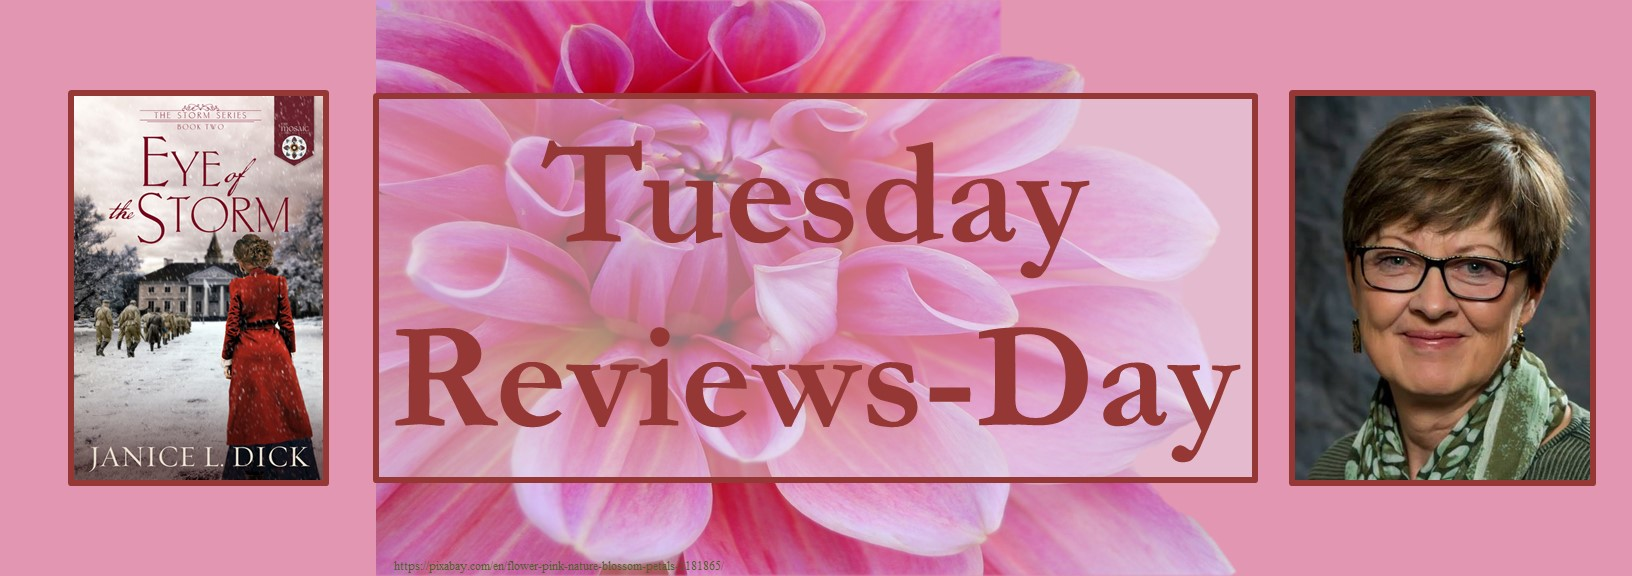 011221 - eye of the storm - tuesday reviews day banner